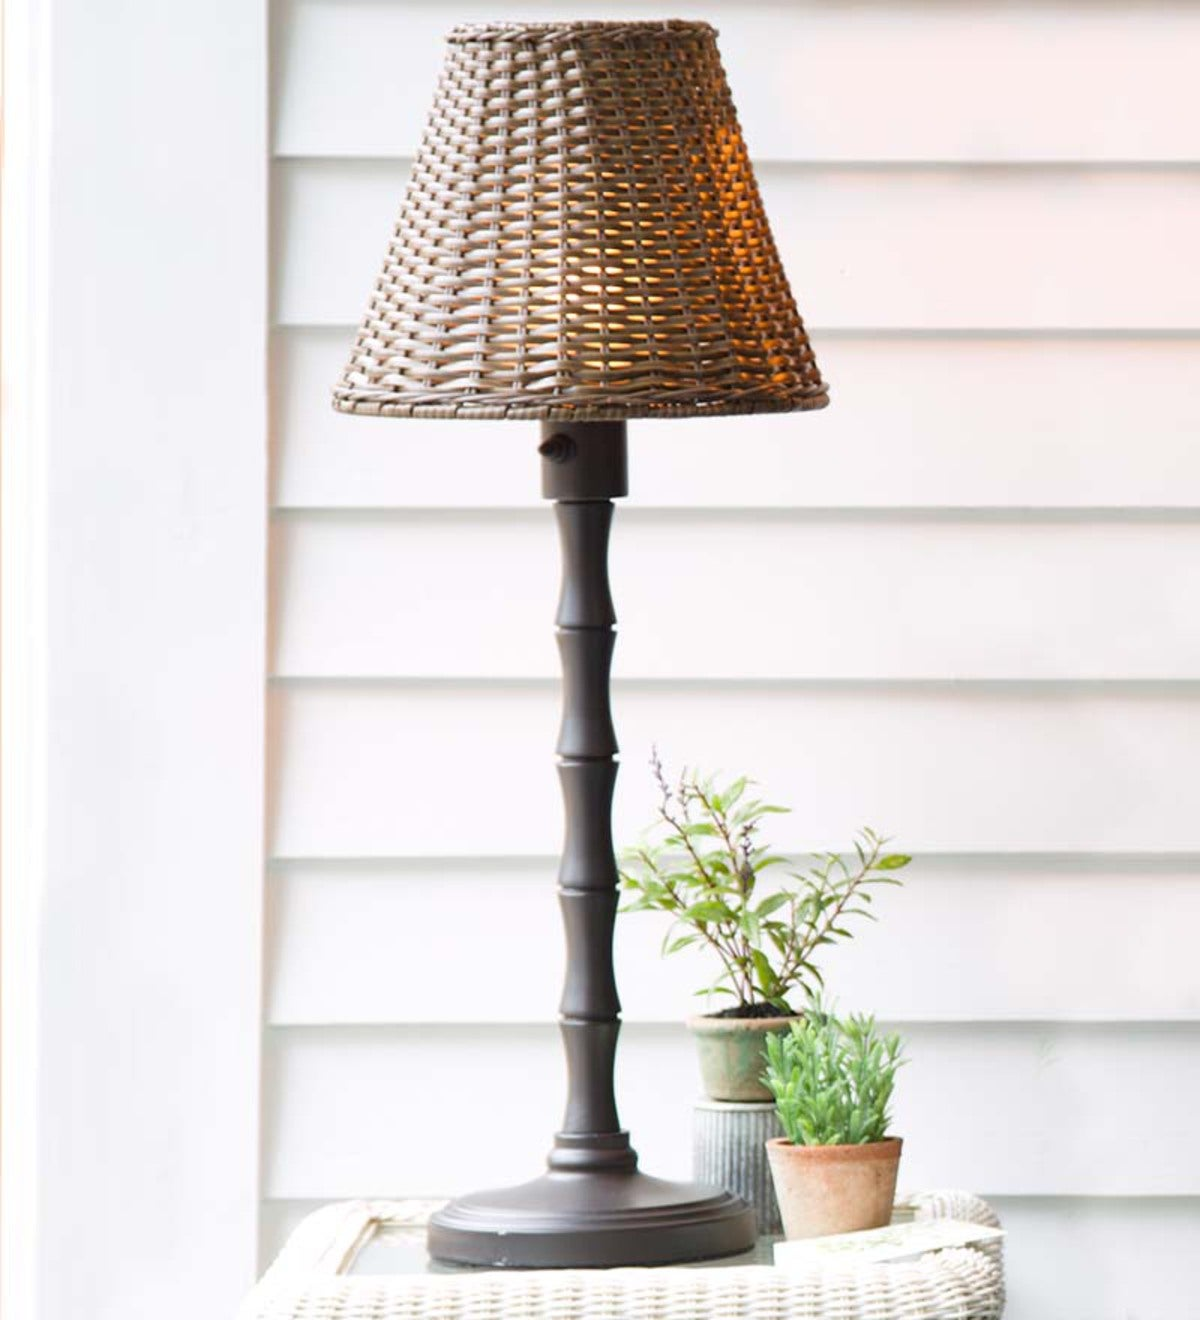 Outdoor patio lamp light deck electric with lampshade /& weather proof